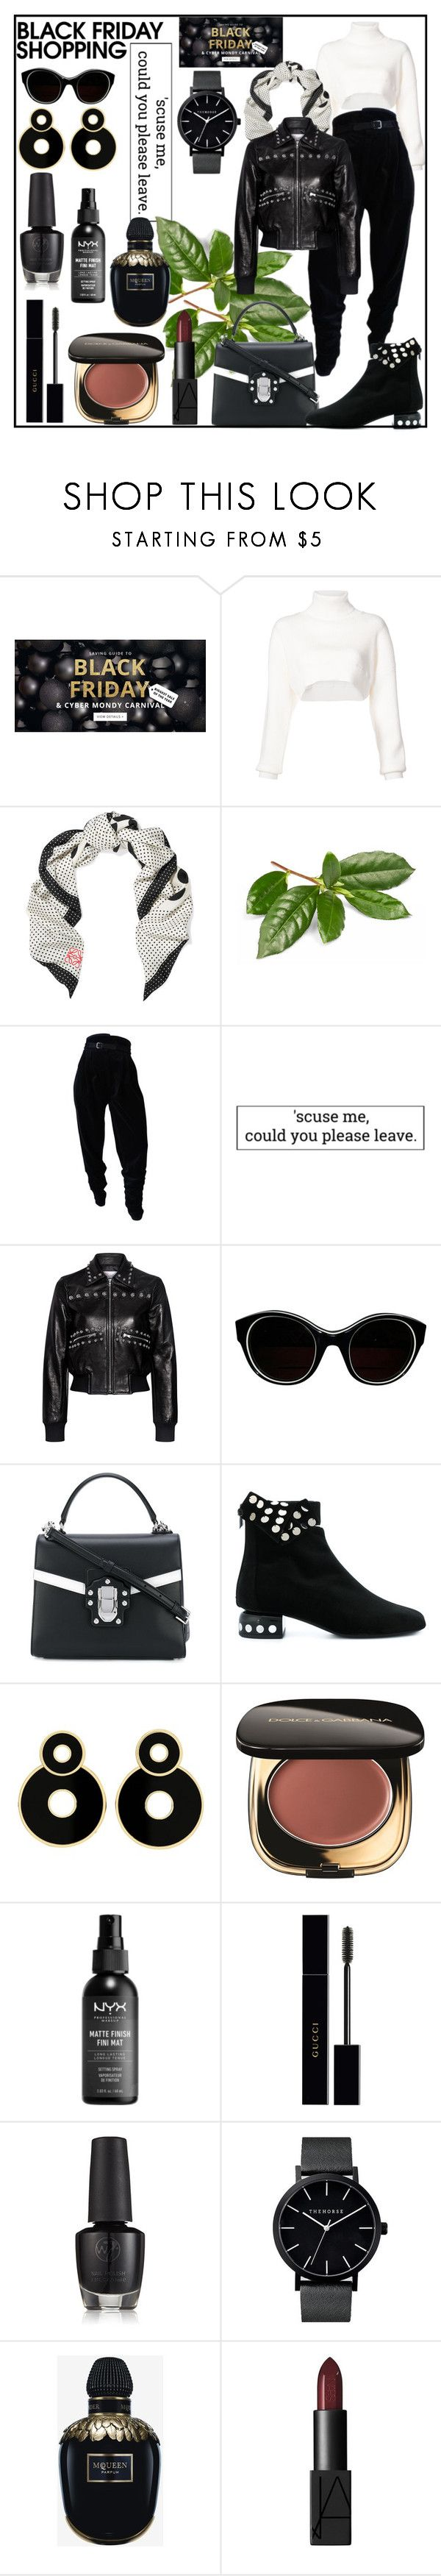 """Steal Those Deals: Black Friday"" by din-sesantadue ❤ liked on Polyvore featuring Alexandre Vauthier, Loewe, Versace, RED Valentino, Sonia Rykiel, Dolce&Gabbana, Pierre Hardy, NYX, Gucci and Alexander McQueen"